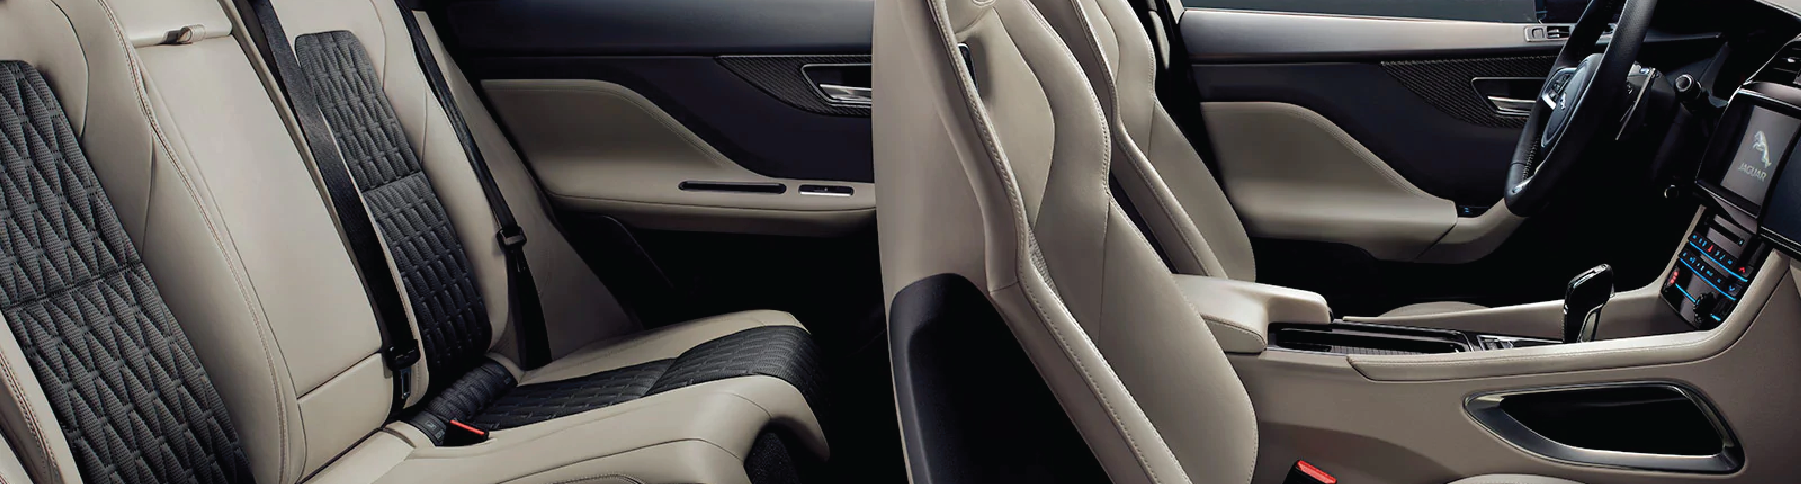 IMAGE OF JAGUAR F-PACE INTERIOR IN BLACK AND BEIGE.